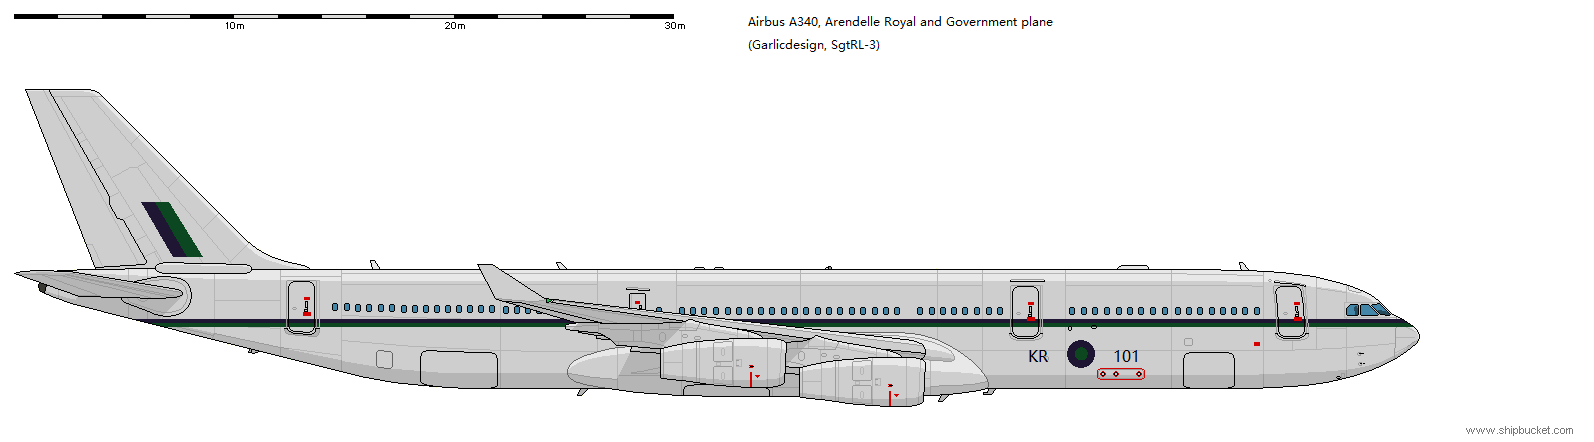 Arendelle Royal and Government plane-A340.png